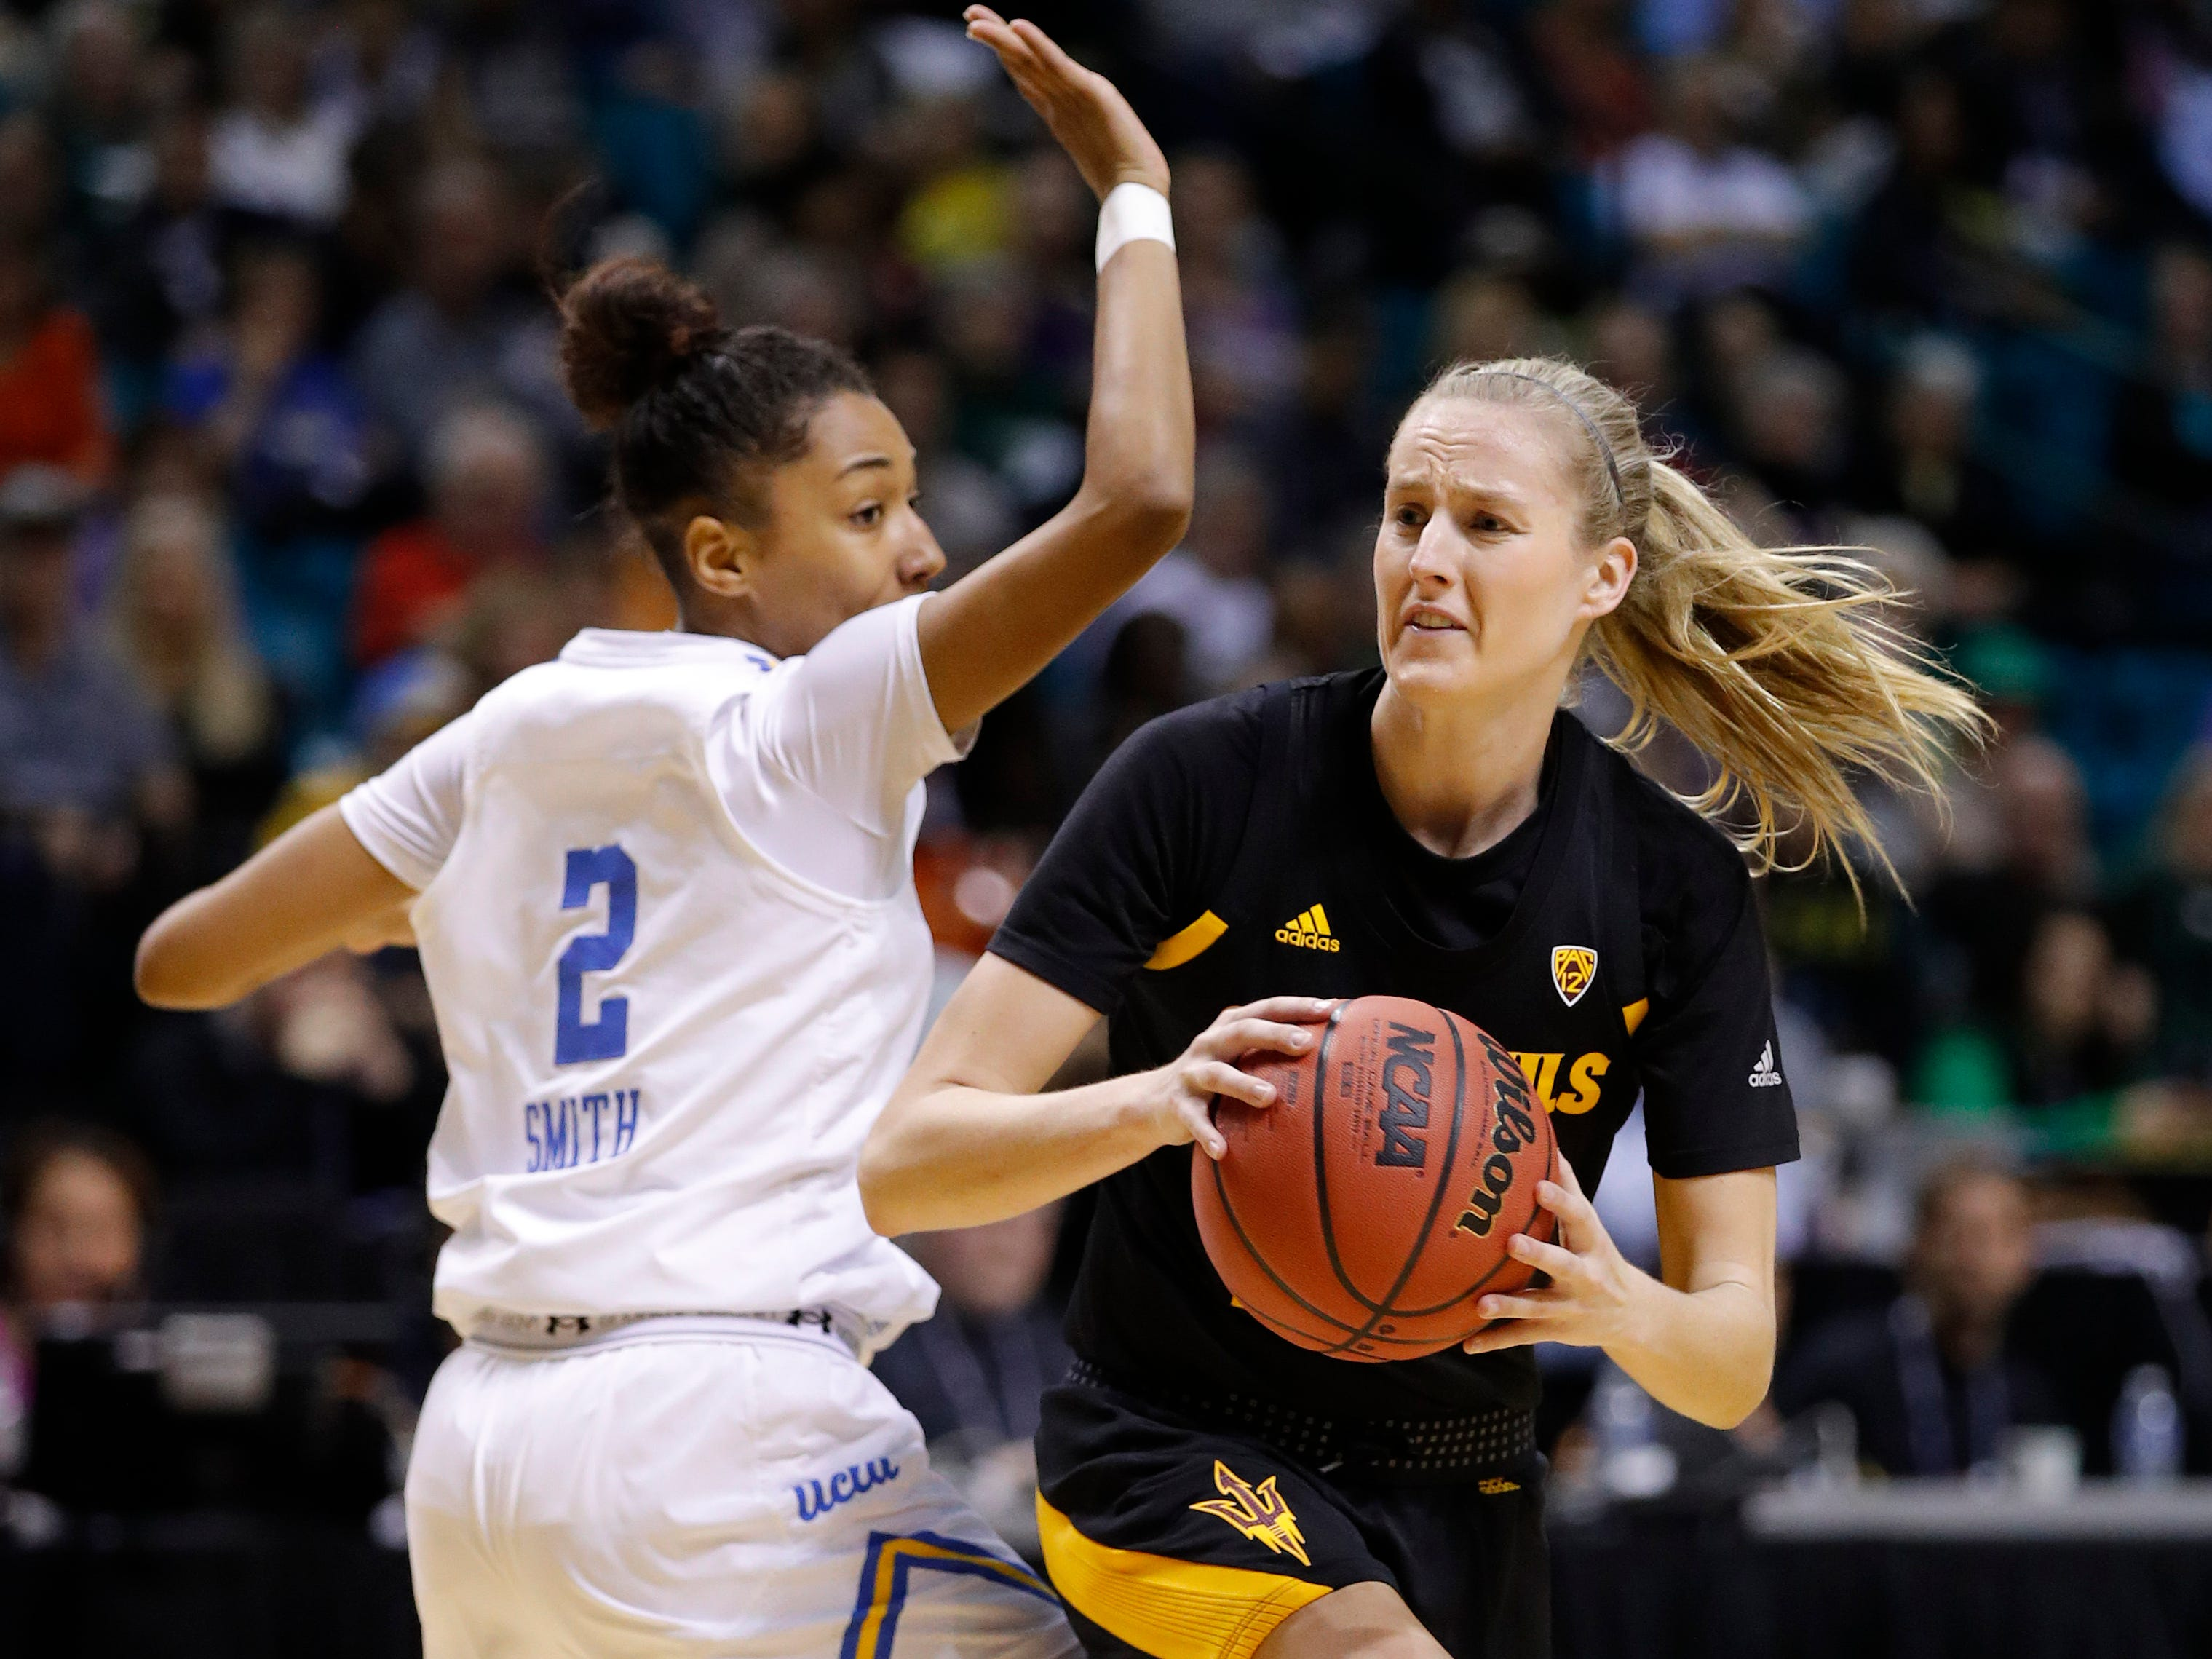 Arizona State's Courtney Ekmark passes around UCLA's Ahlana Smith during the first half of an NCAA college basketball game at the Pac-12 women's tournament Friday, March 8, 2019, in Las Vegas.